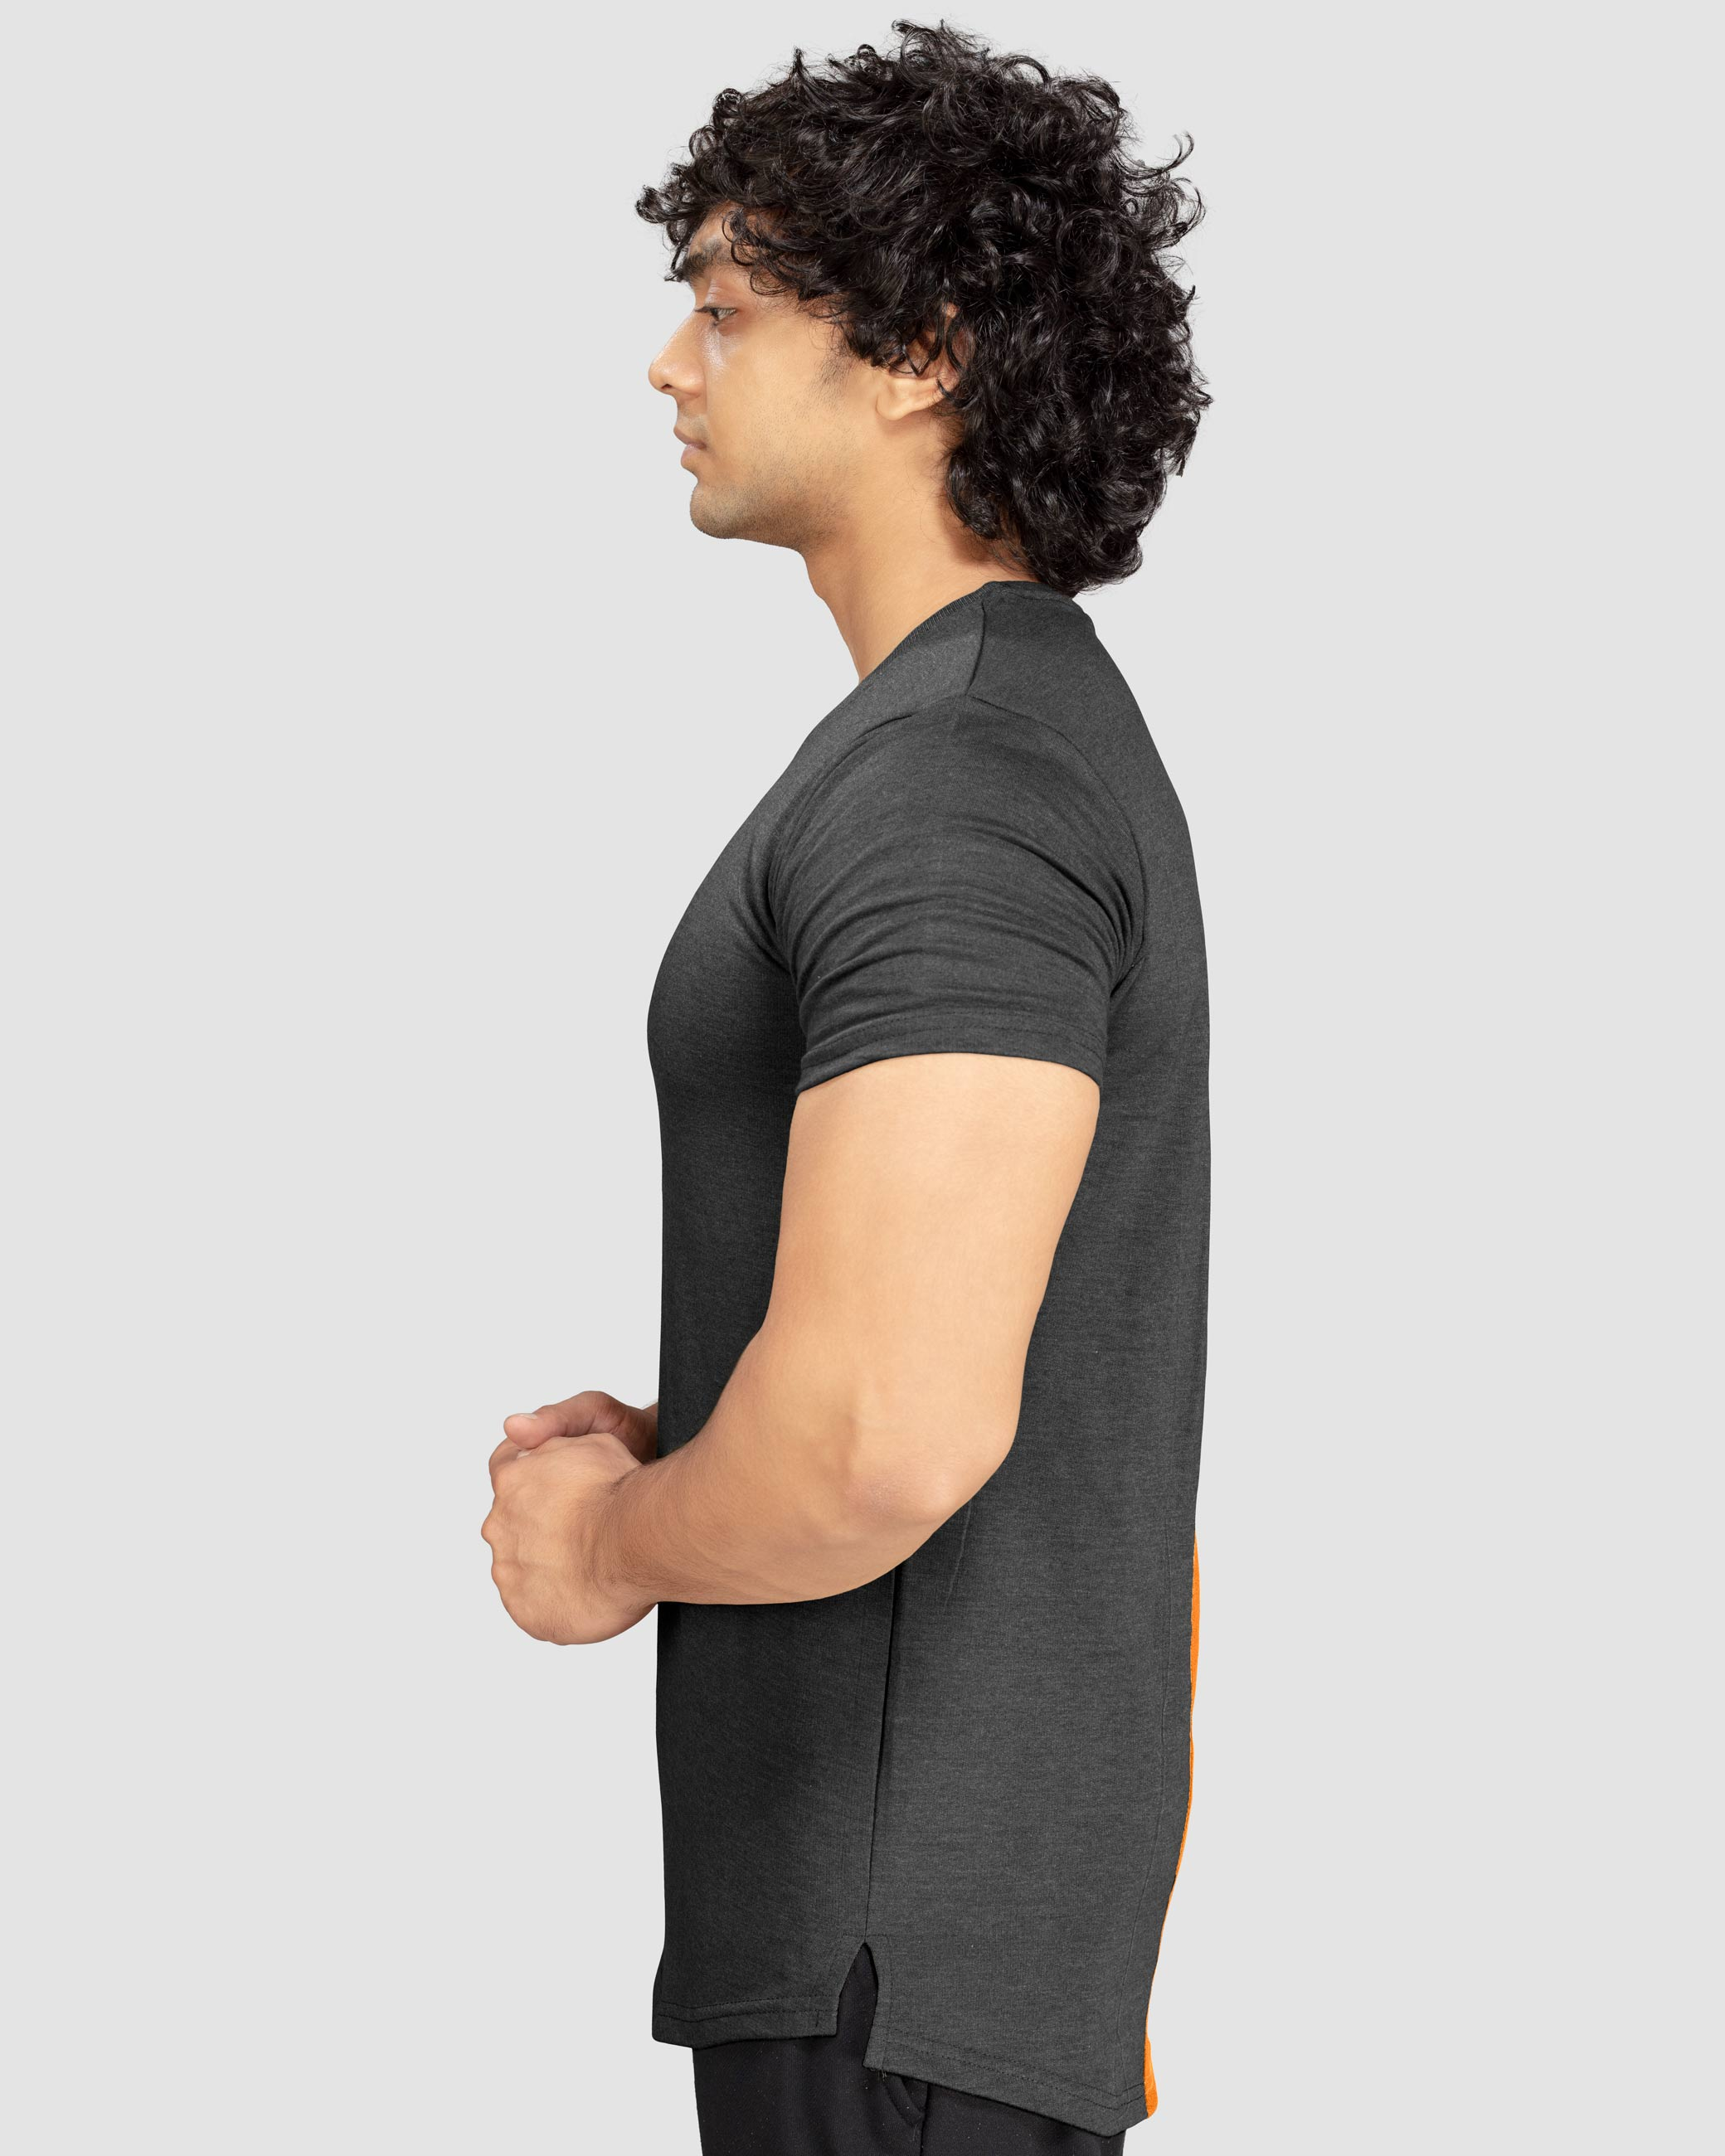 Flex Leisure Longline t-shirt(Dark Grey) Athflex